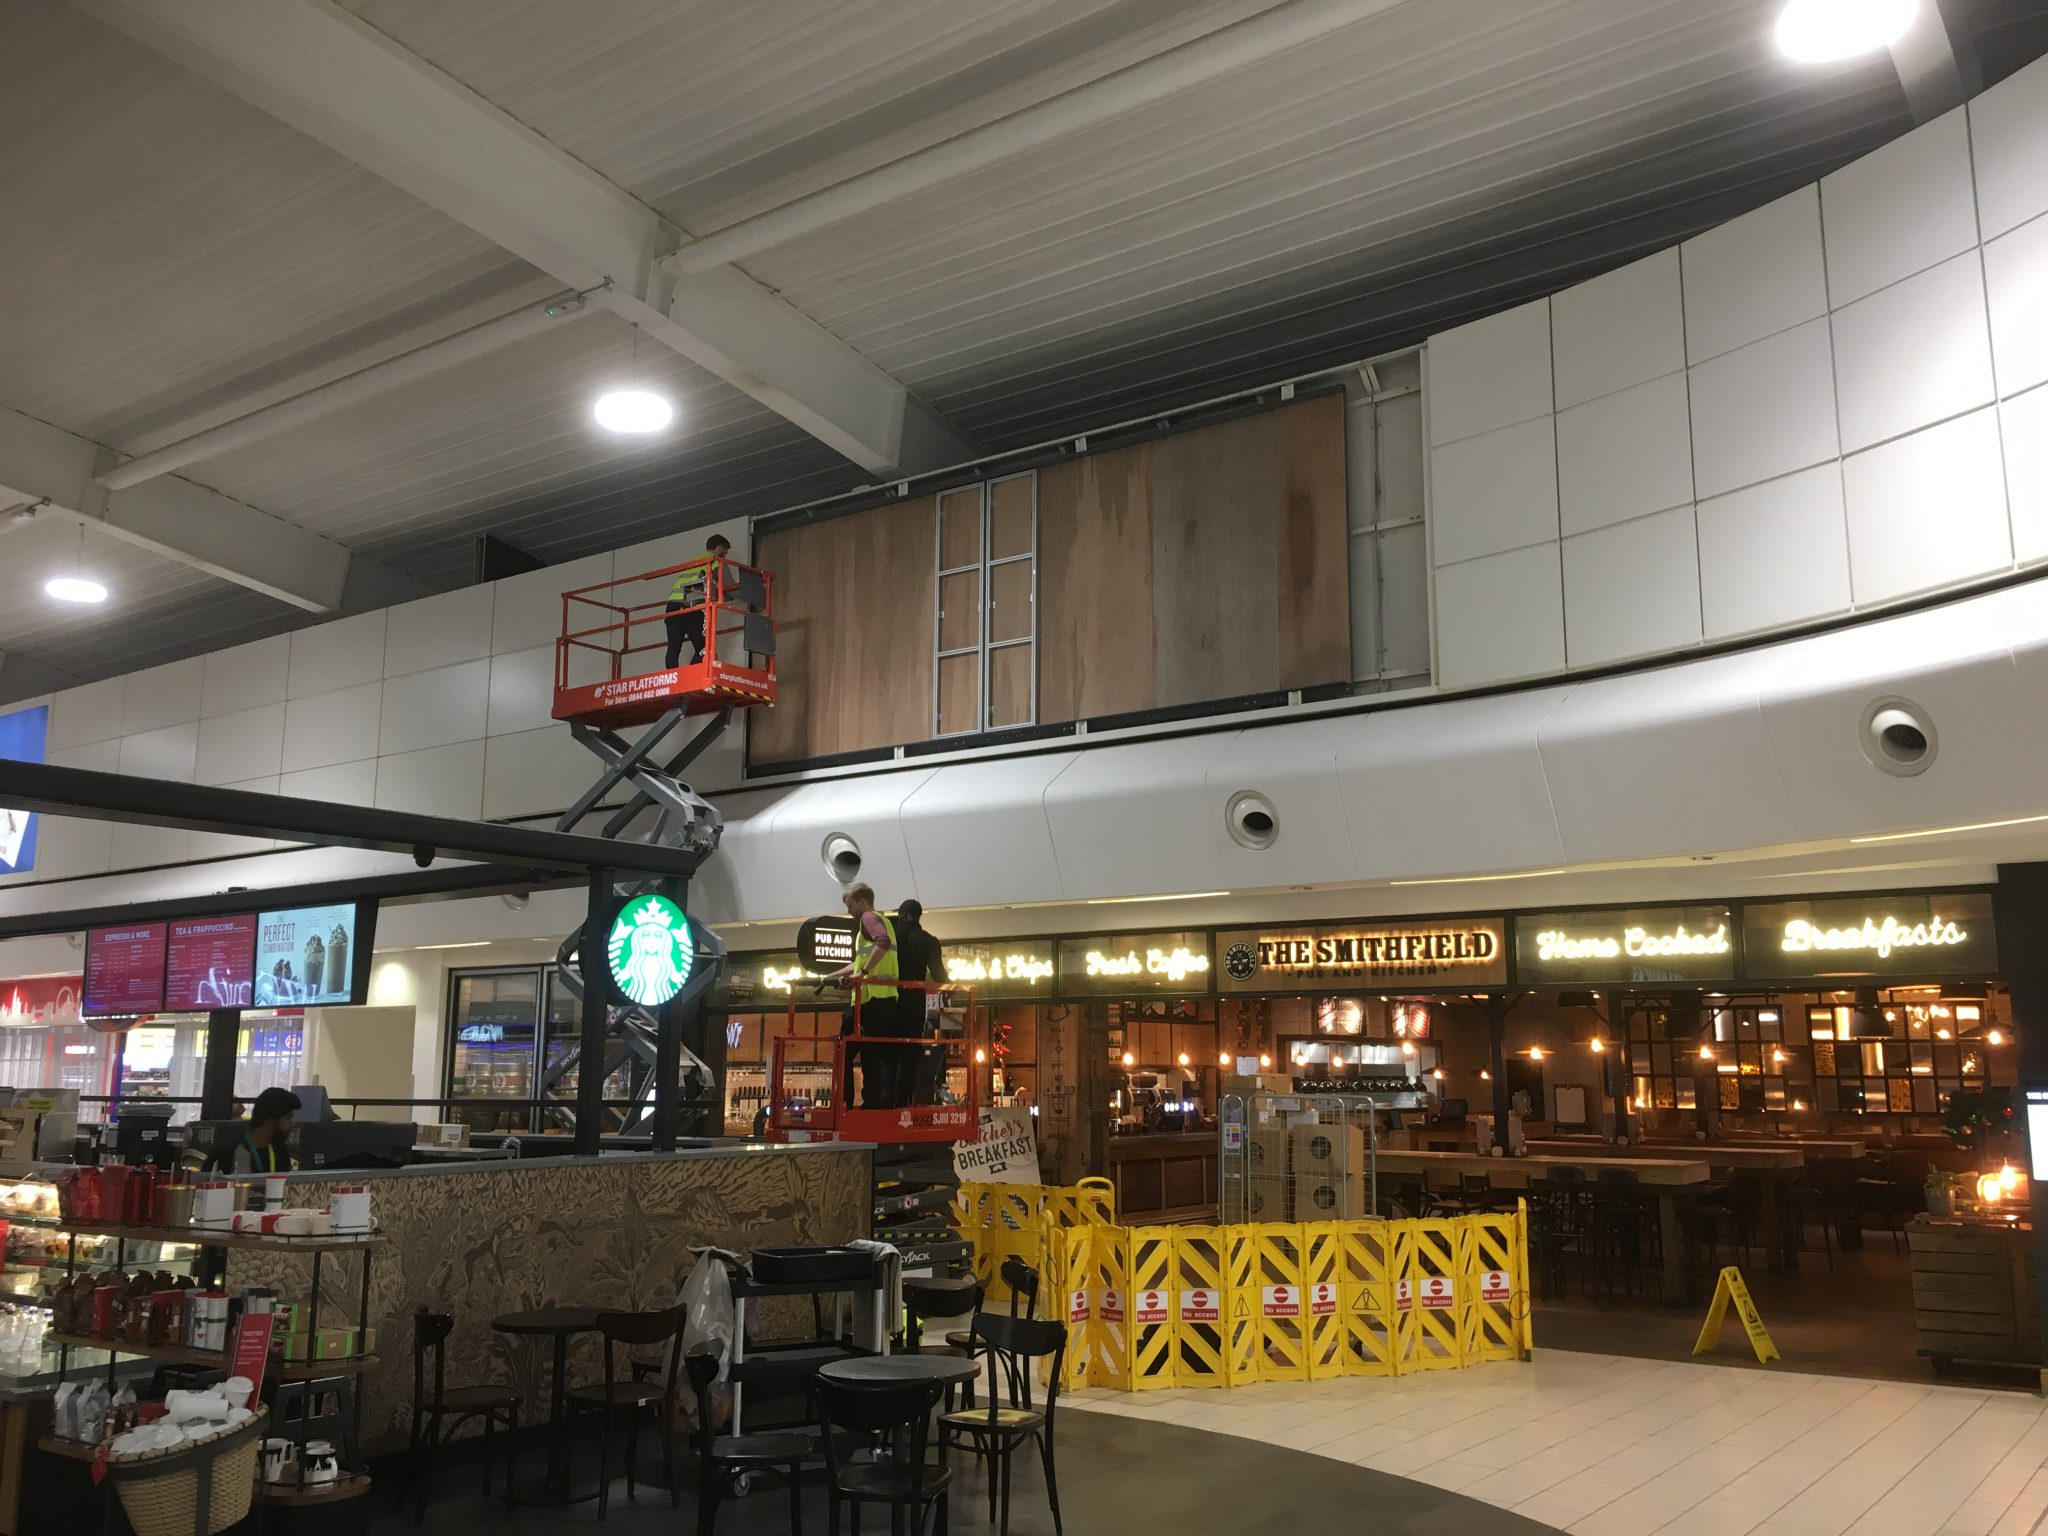 Health and Safety - LED Wall installation using scissor lifts at London Luton Airport